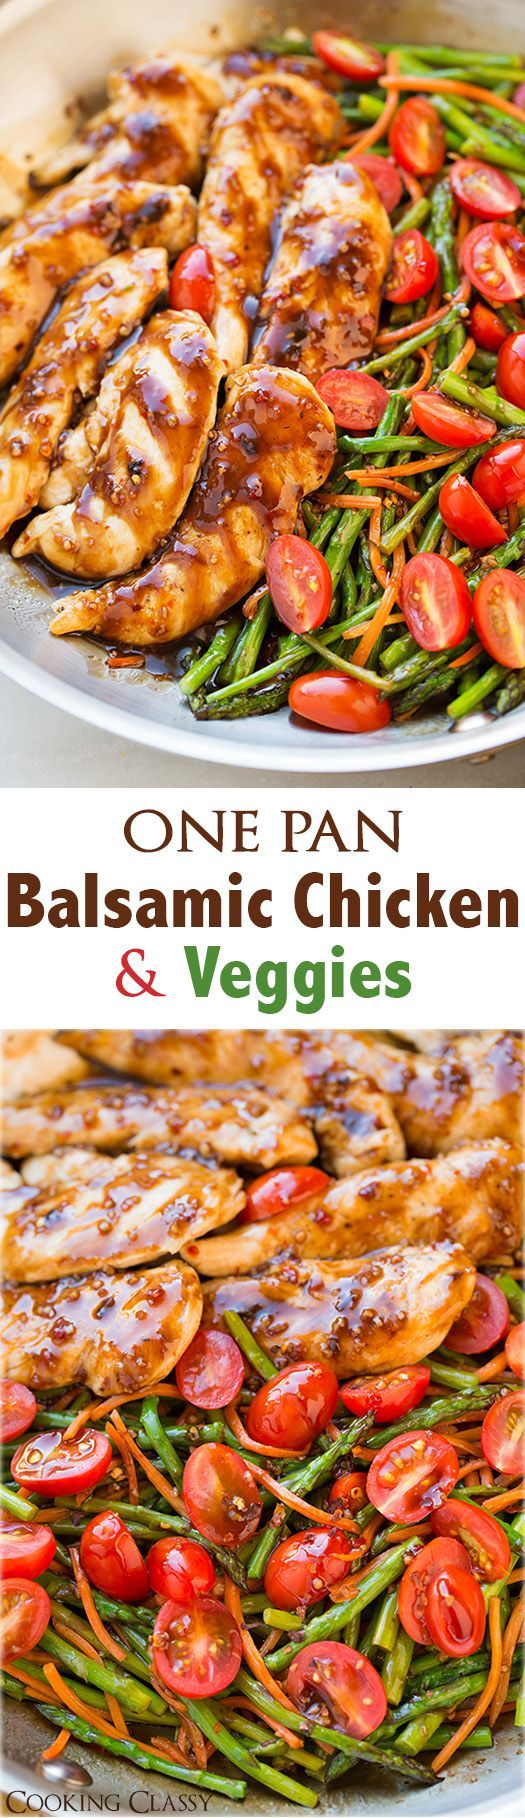 Delicious, Fast, One Pot Cleanup, Will Make Again: One Pan Balsamic Chicken